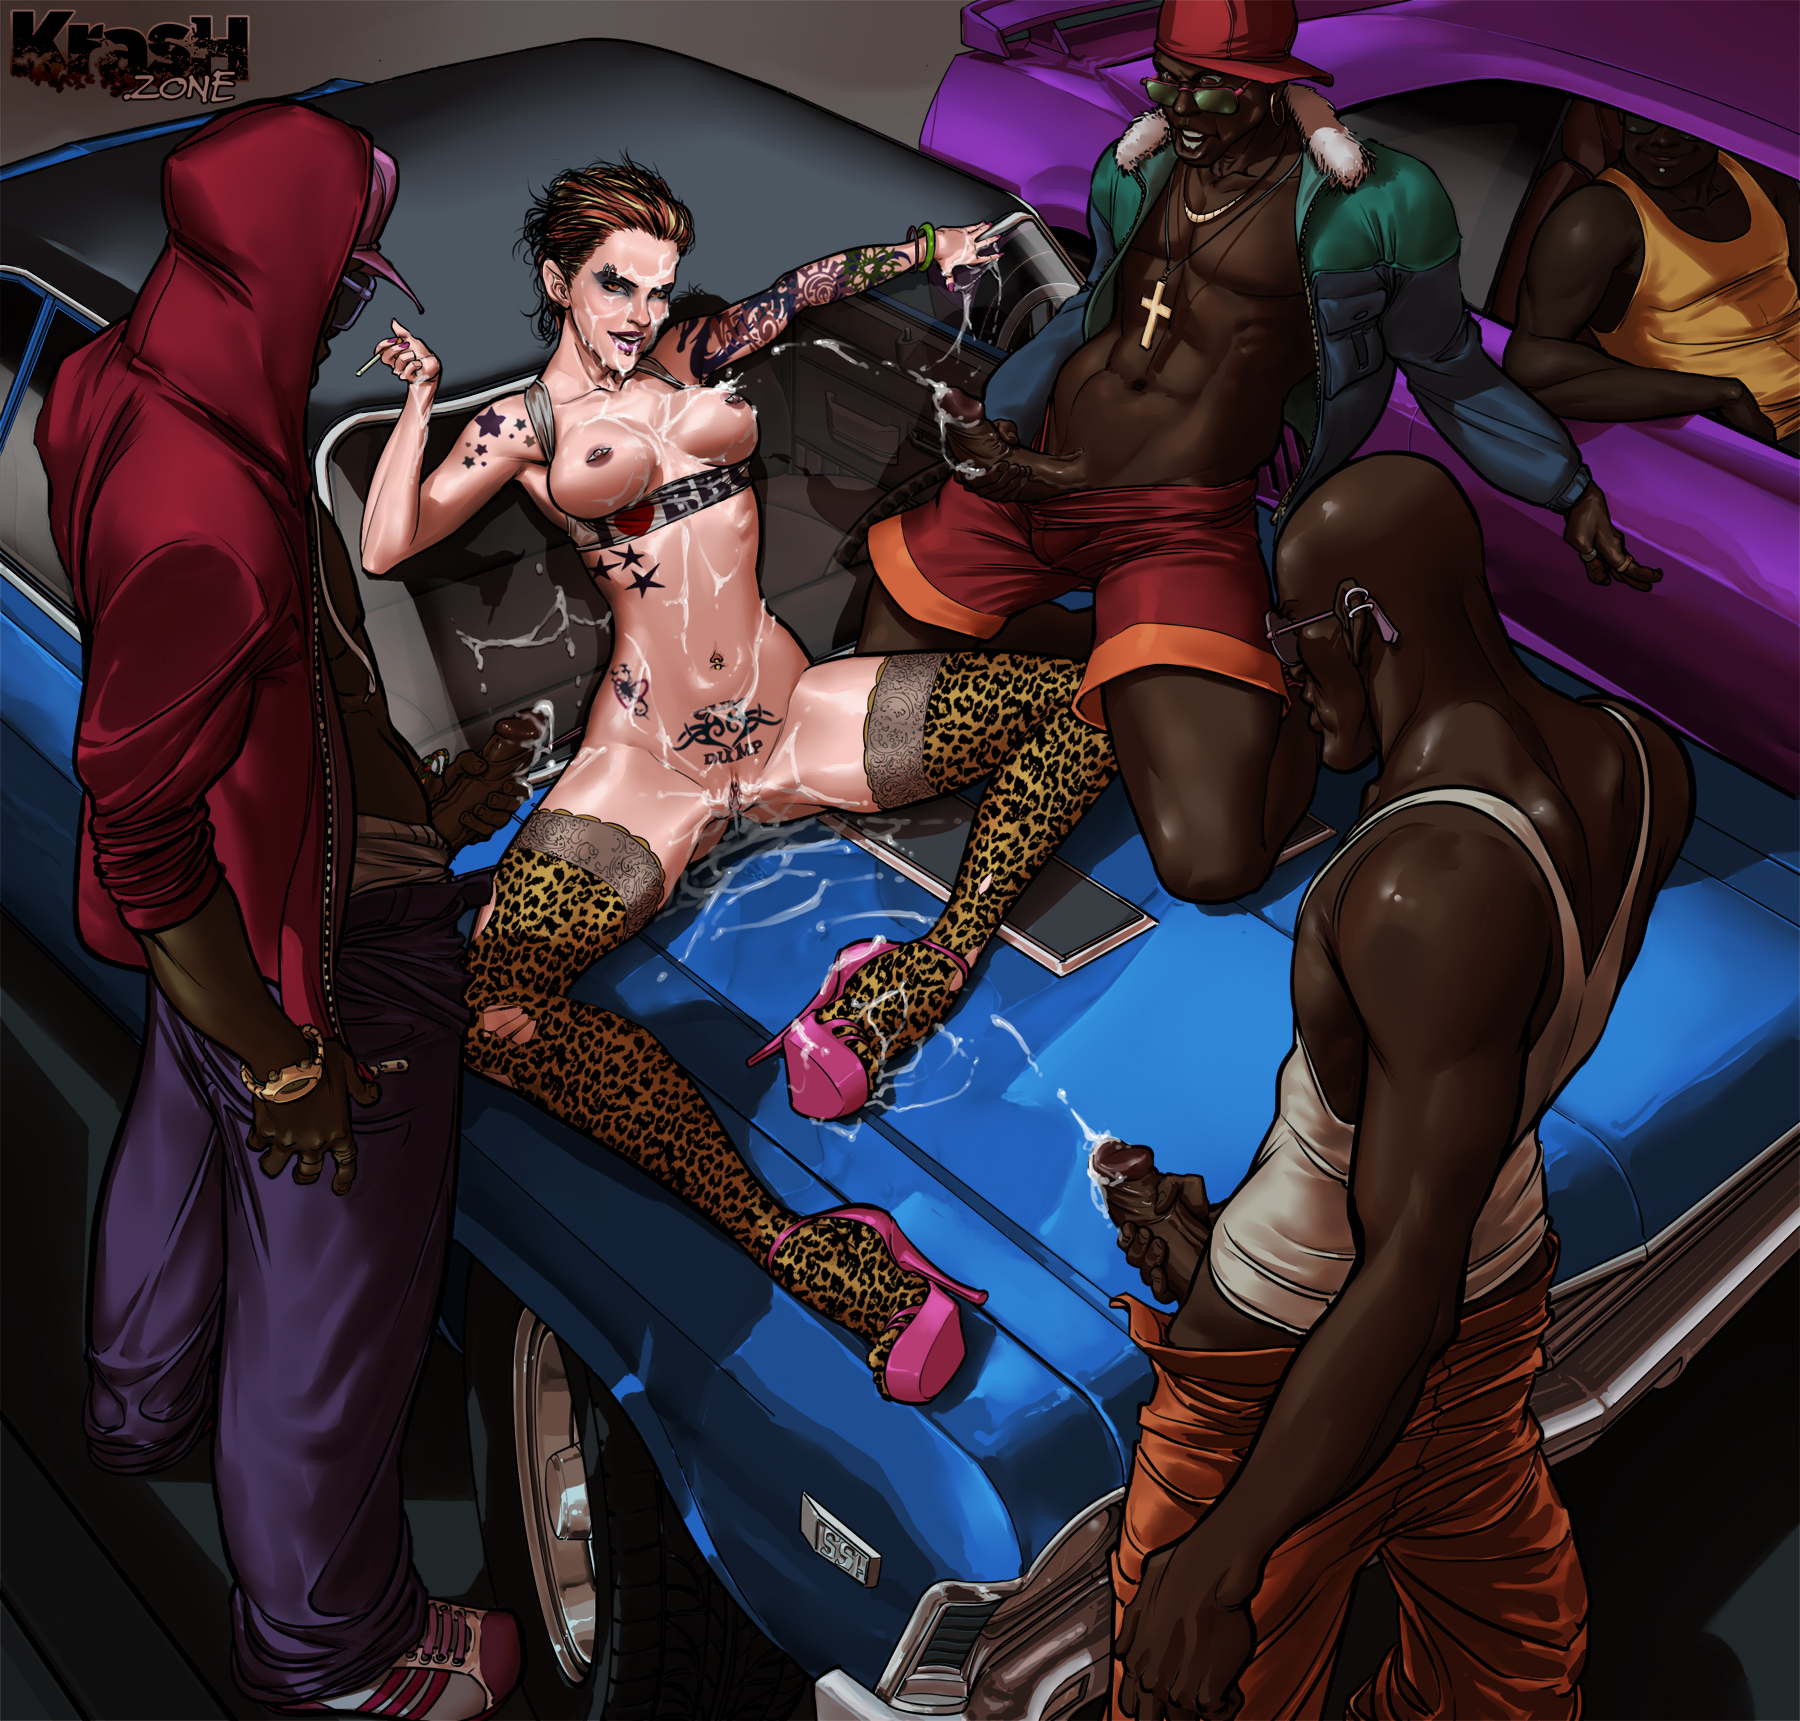 Back alley 3d interracial gangbang and some furry fucking 1